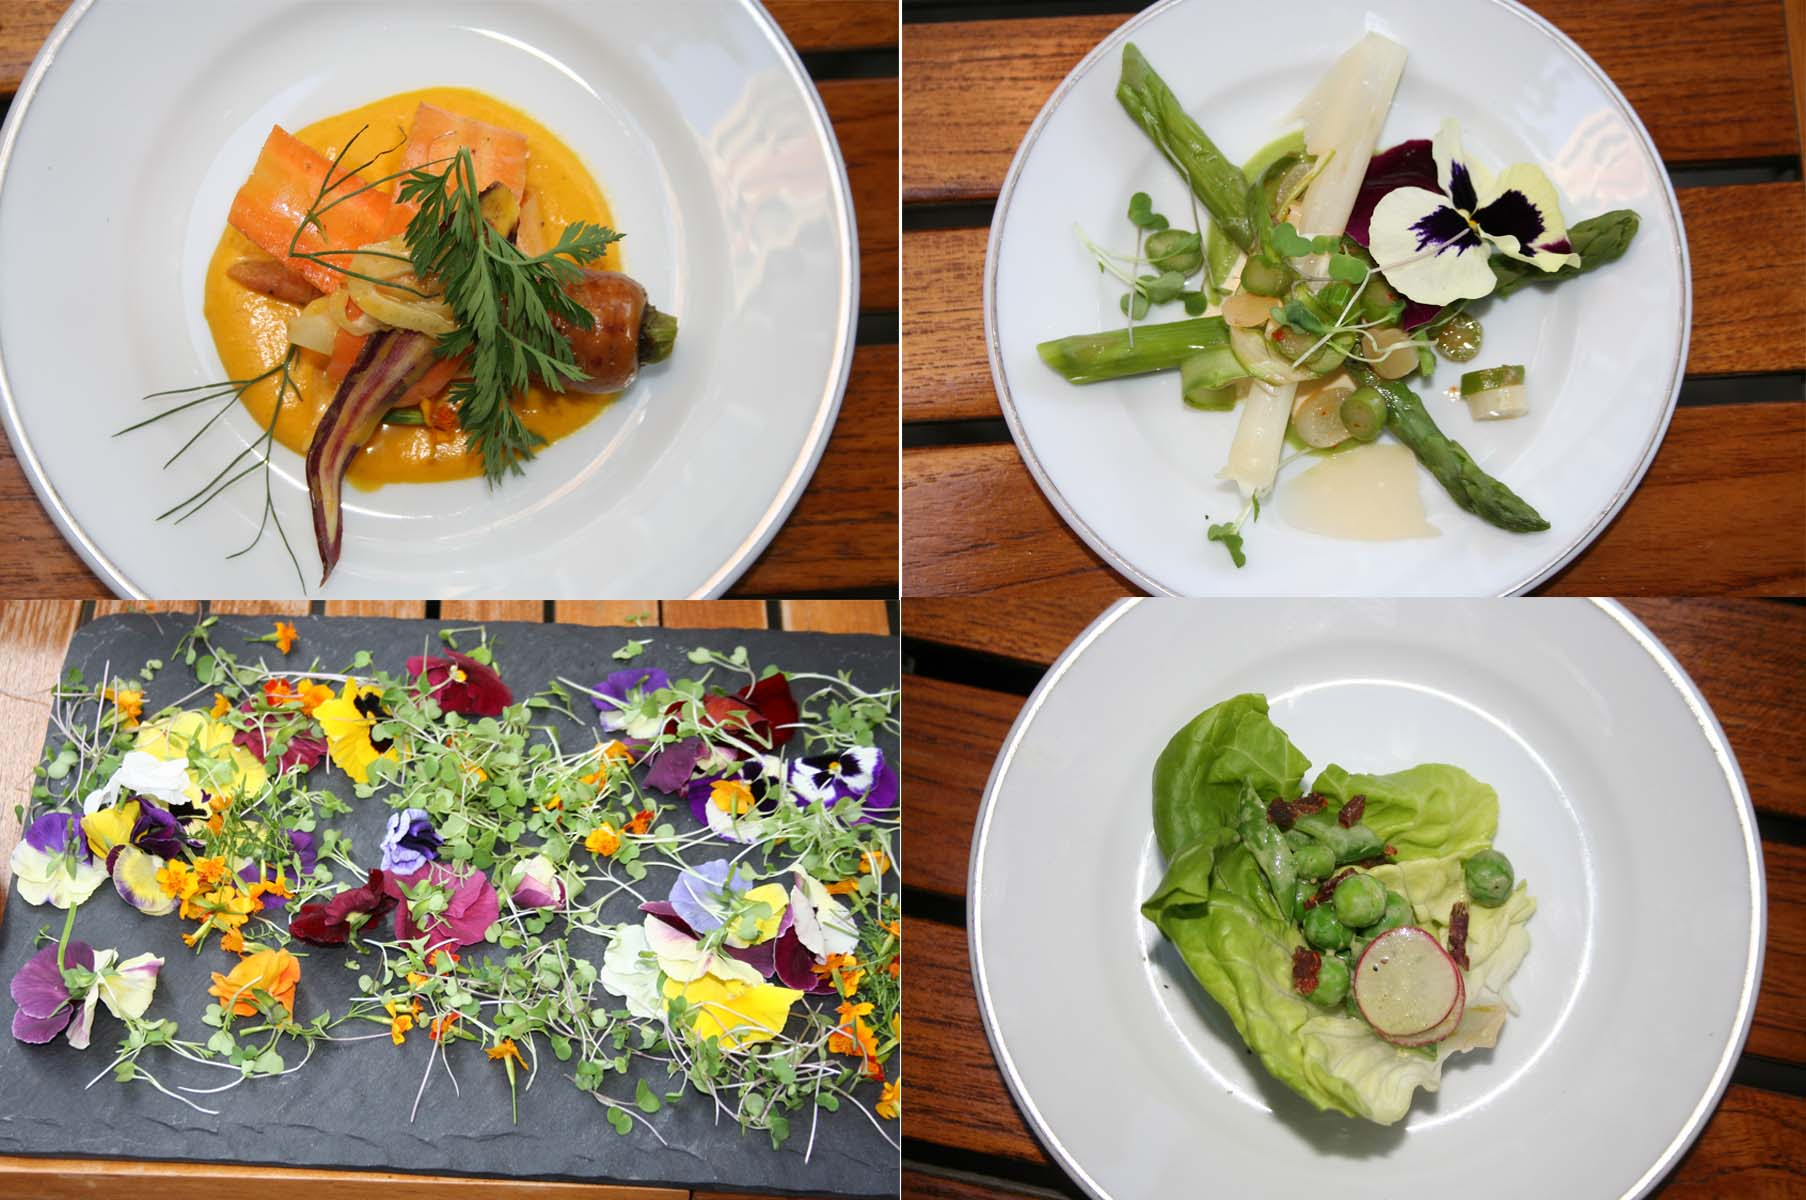 Spring salads include (clockwise from upper left) the baby carrot salad, asparagus salad and the baby wedge salad along with a slate of edible pansies and marigolds. (Photos: Mark Heckathorn/DC on Heels)